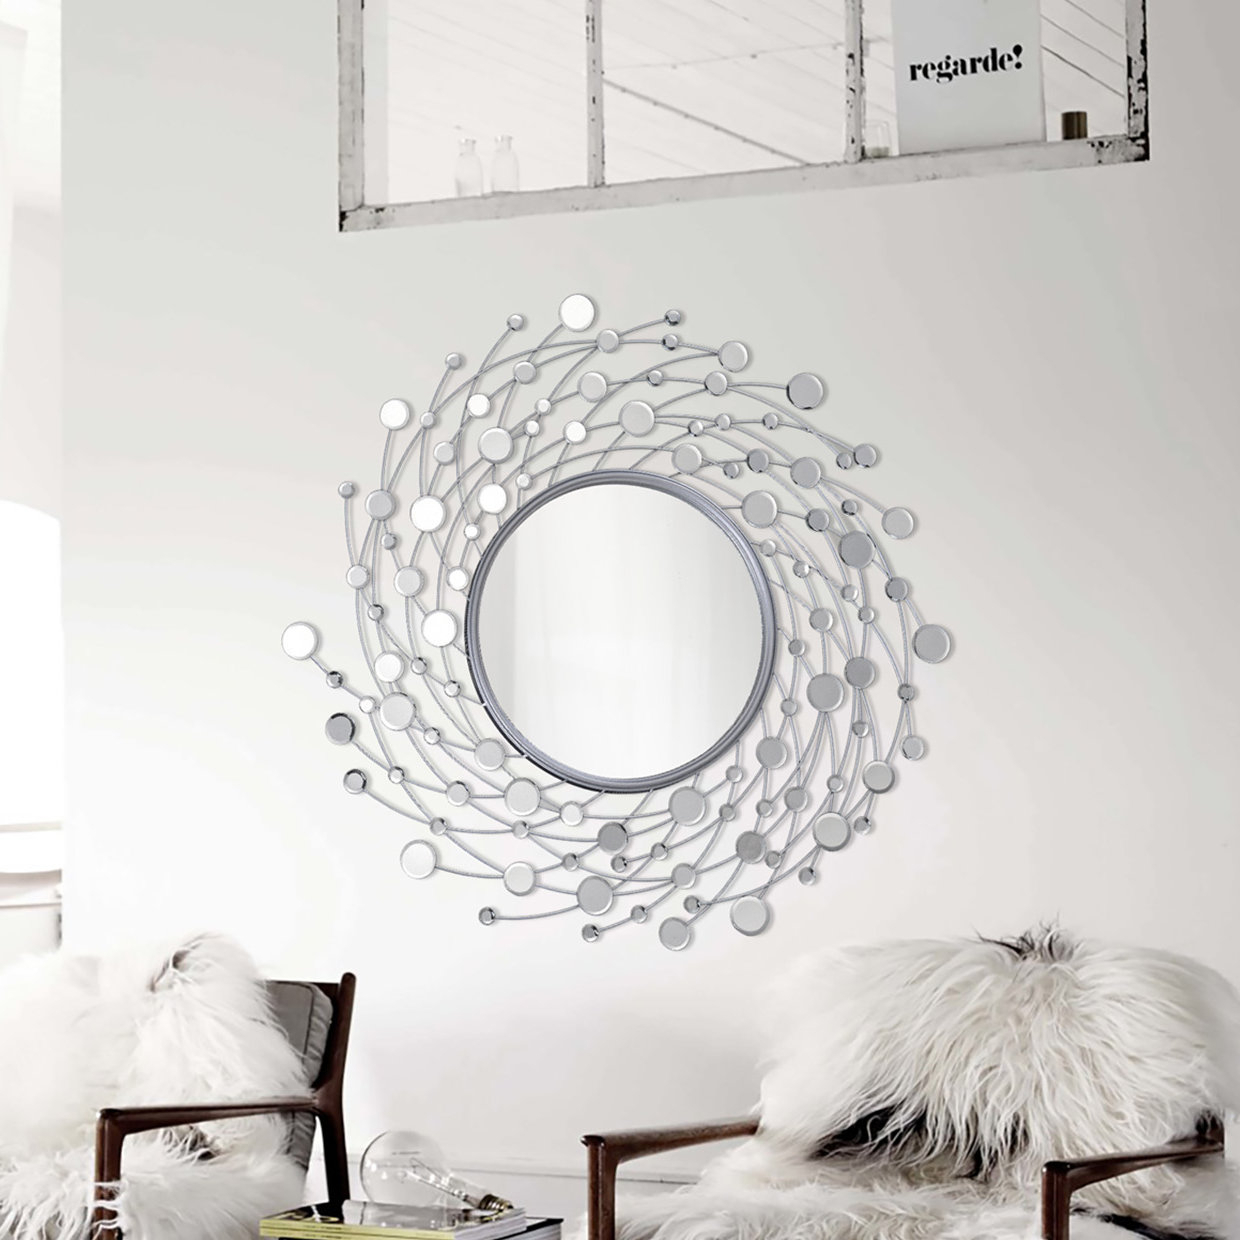 Bruckdale Decorative Flower Accent Mirrors Throughout Latest Hoyos Modern & Contemporary Accent Mirror (View 11 of 20)